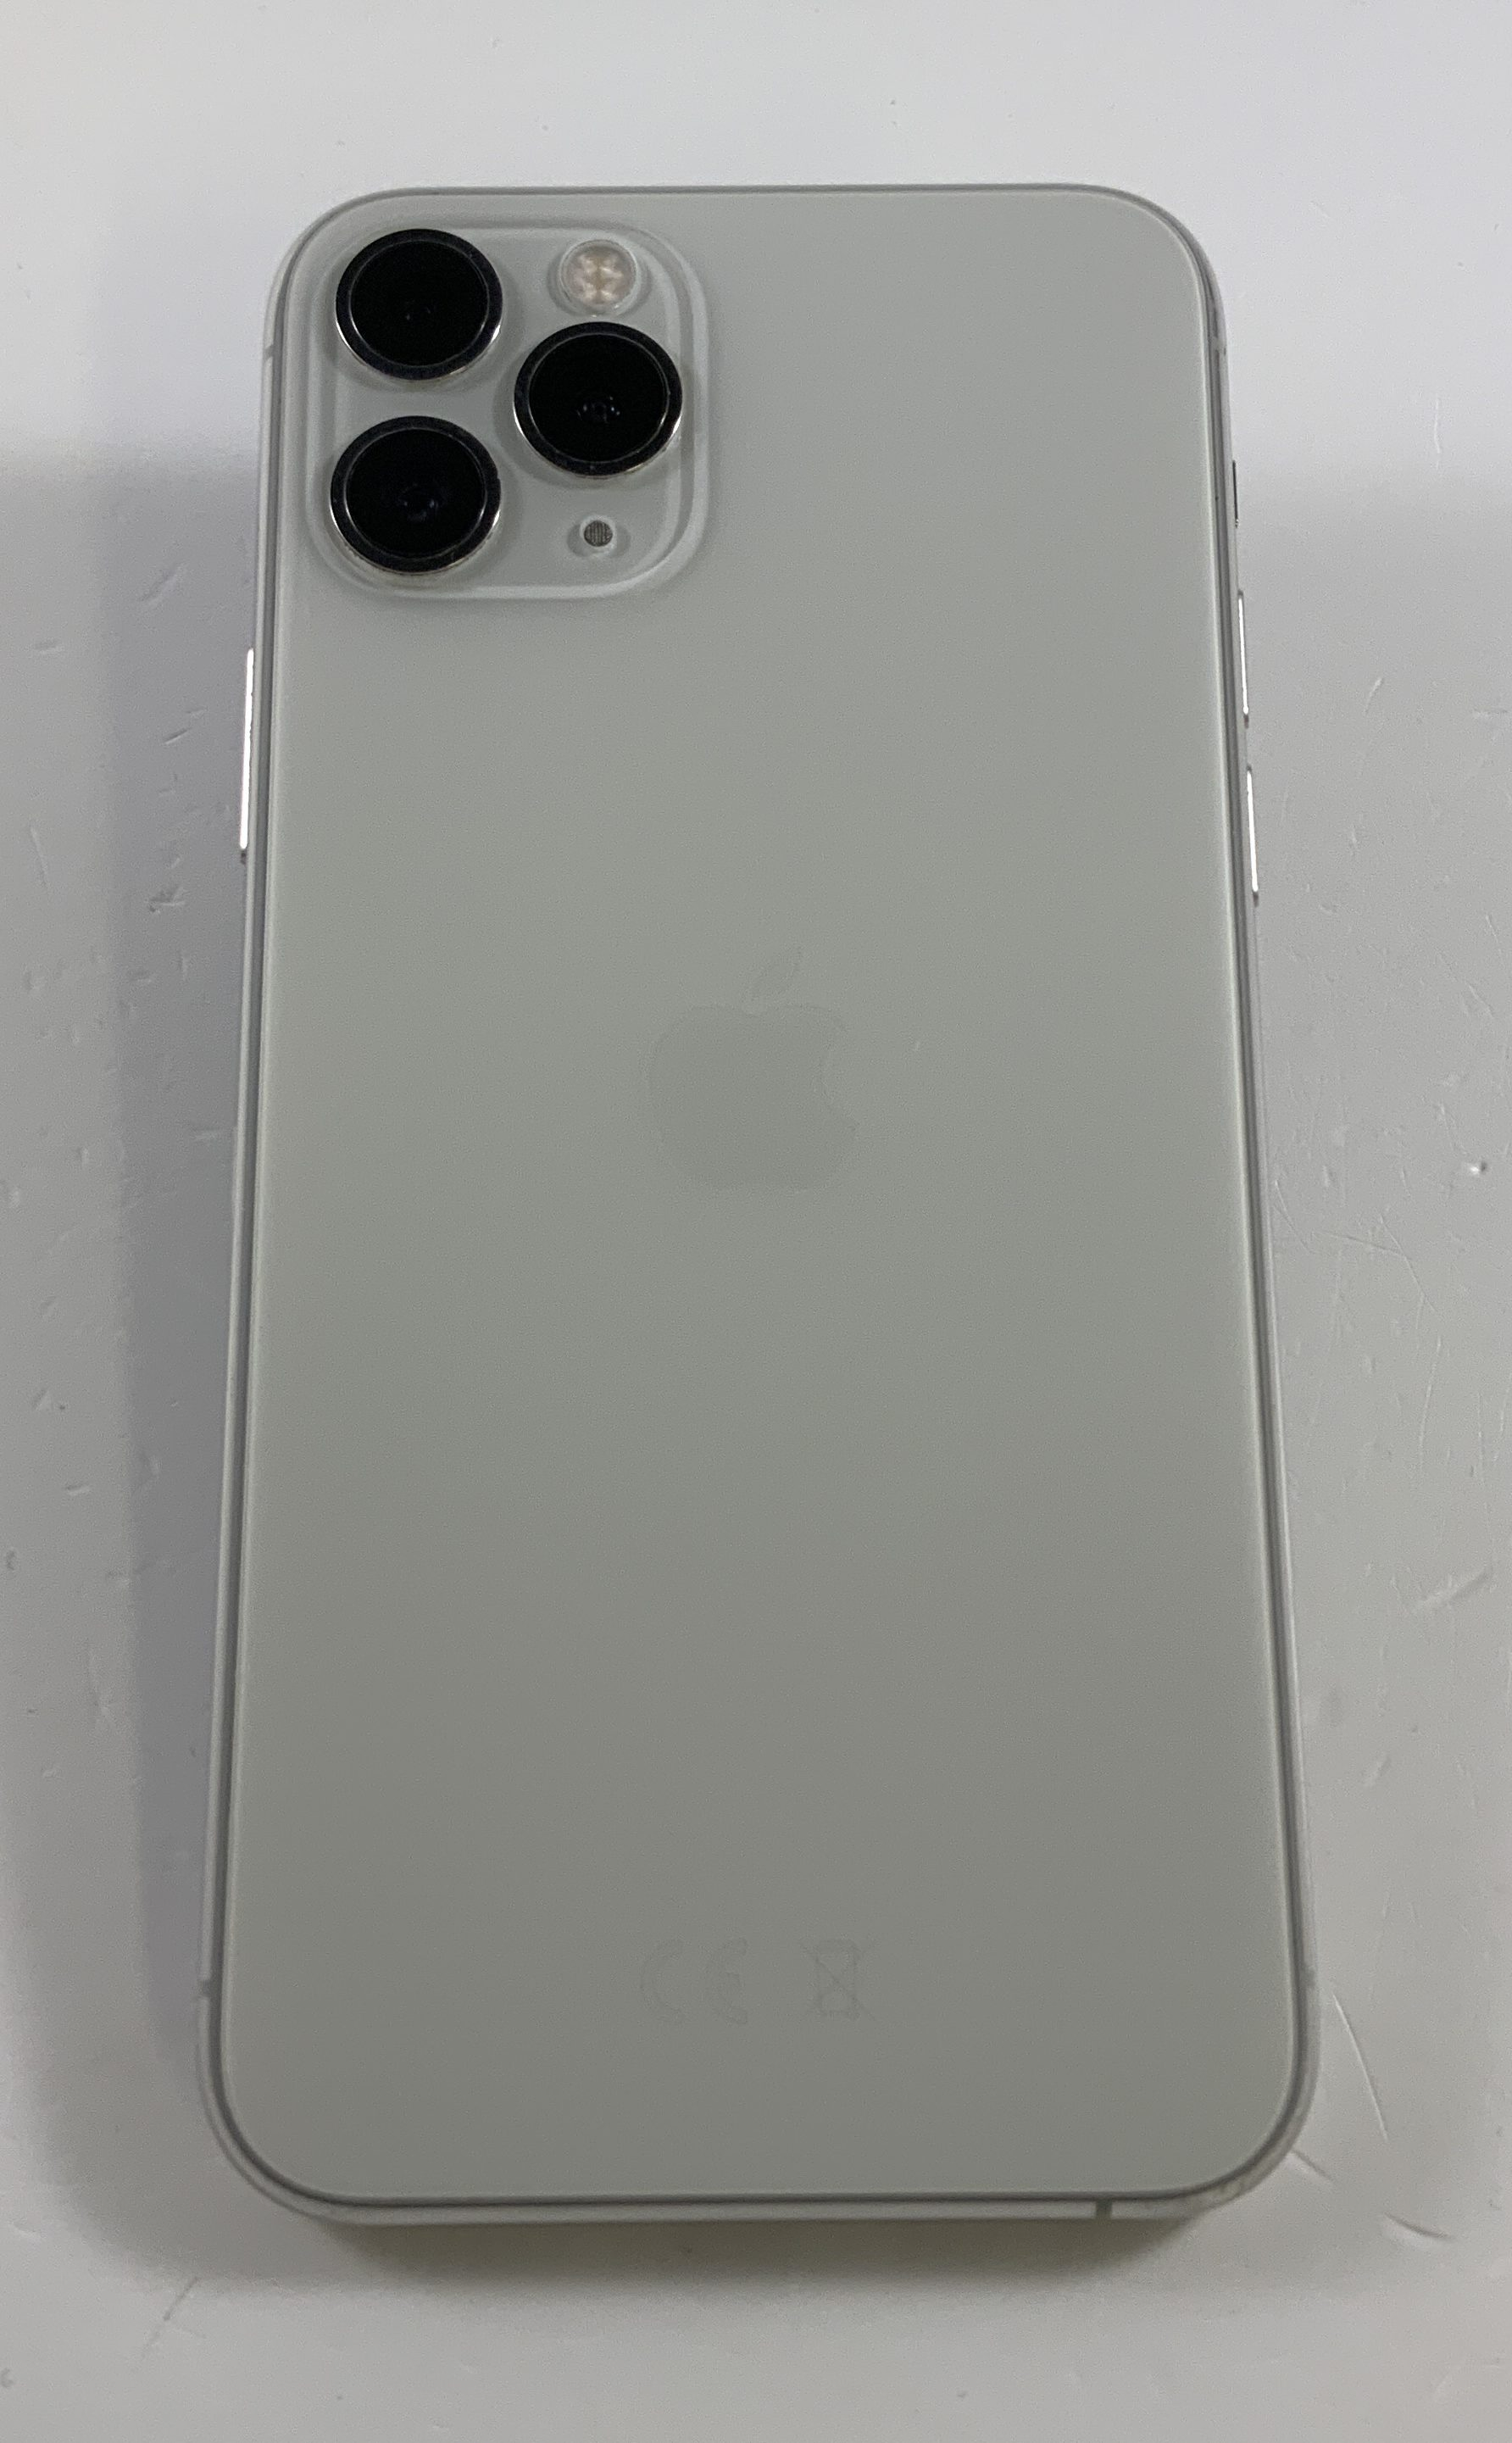 iPhone 11 Pro 64GB, 64GB, Silver, immagine 2